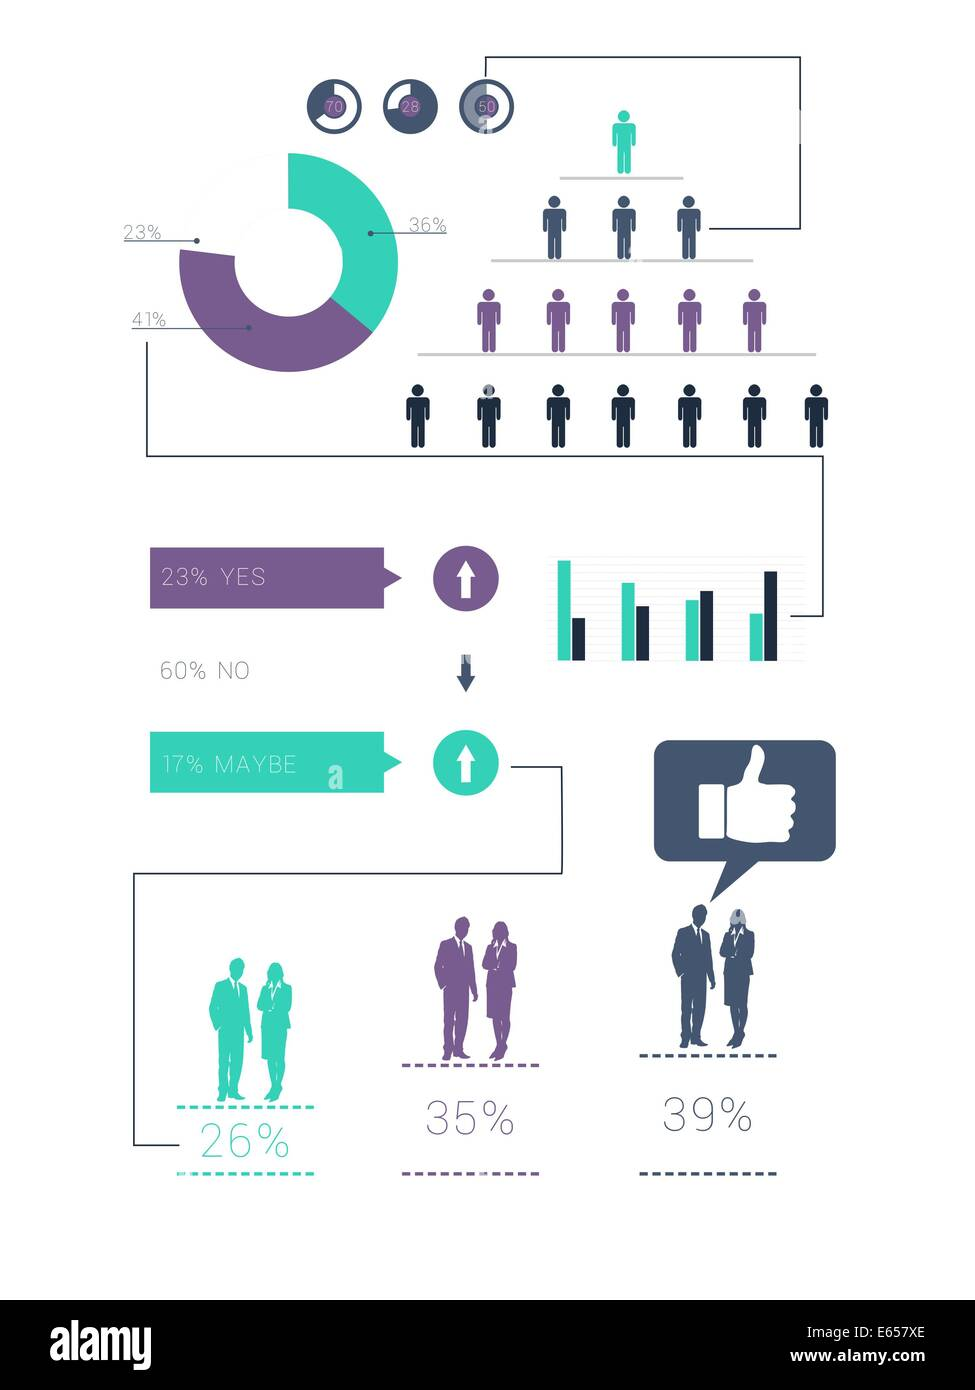 Digitally generated green and purple business infographic - Stock Image